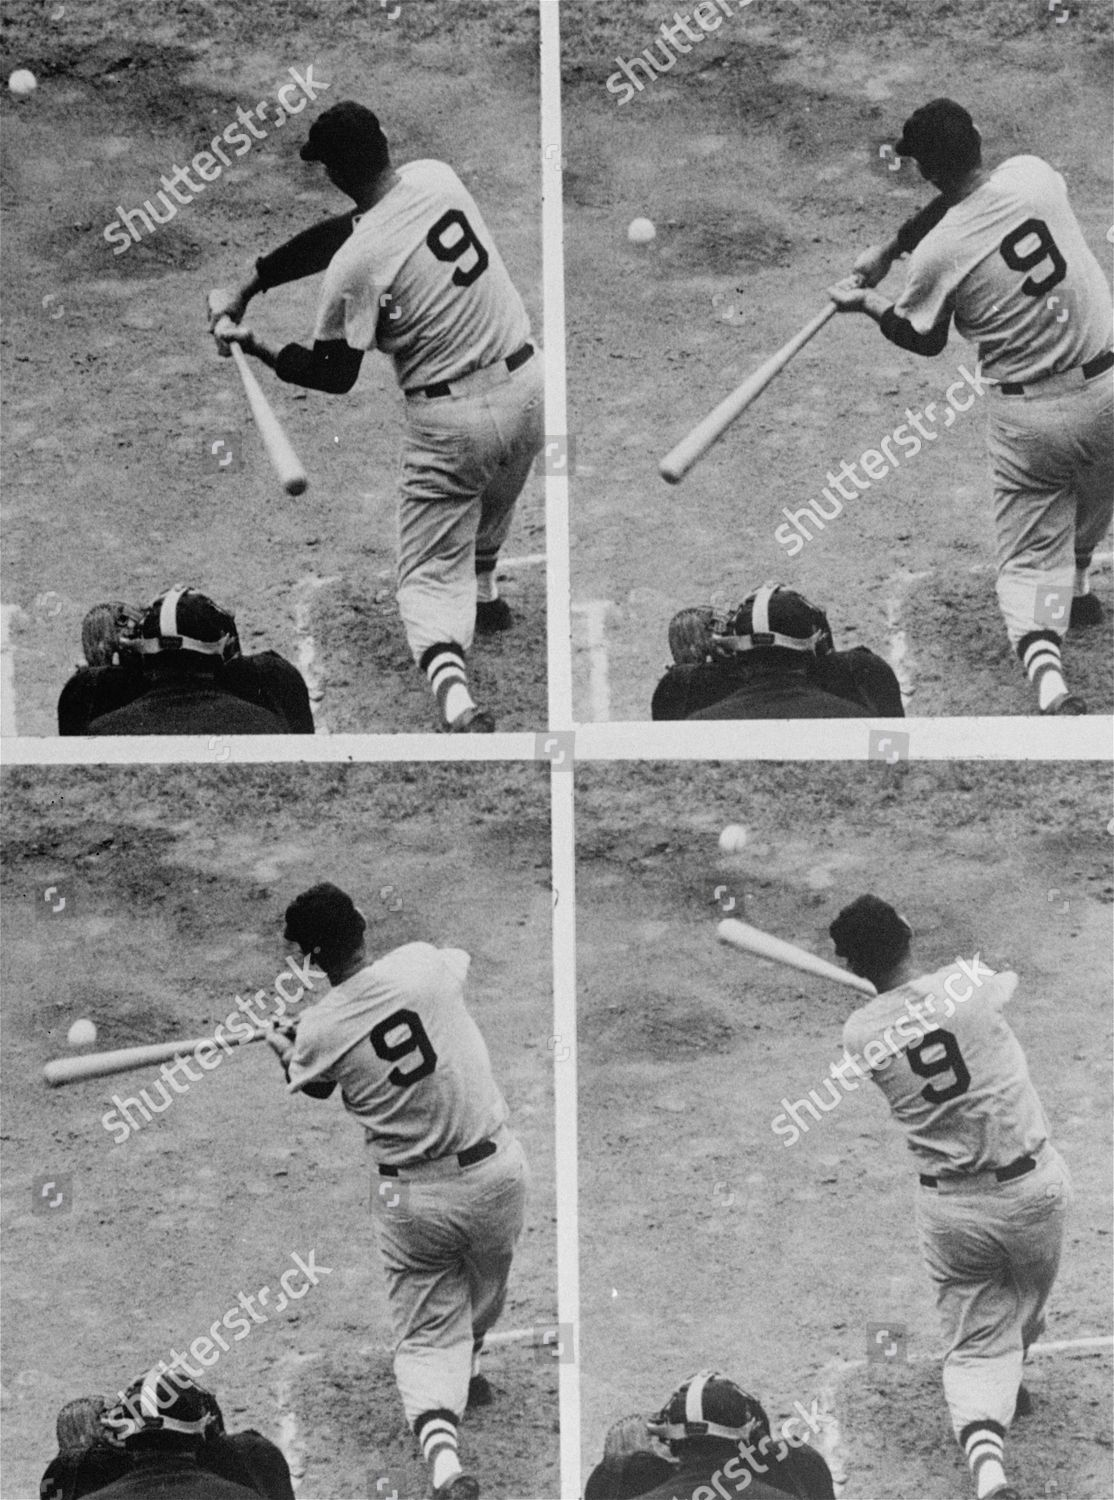 Here Powerful Batting Swing Ted Williams Who Editorial Stock